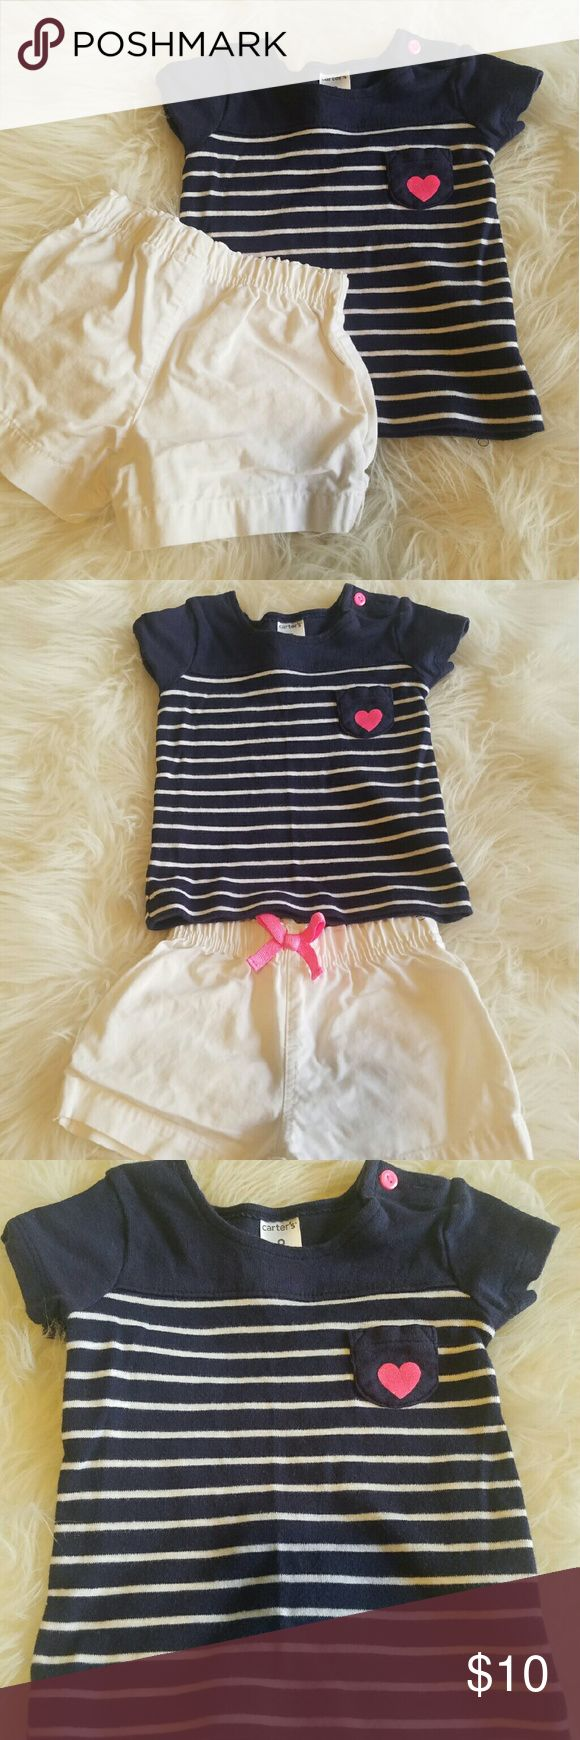 ??Carter's Nautical short set?? In good condition White shorts with pink bow Short sleeve top with pink Size 9 months Fits best between 4-7 months  100% cotton Carter's Matching Sets